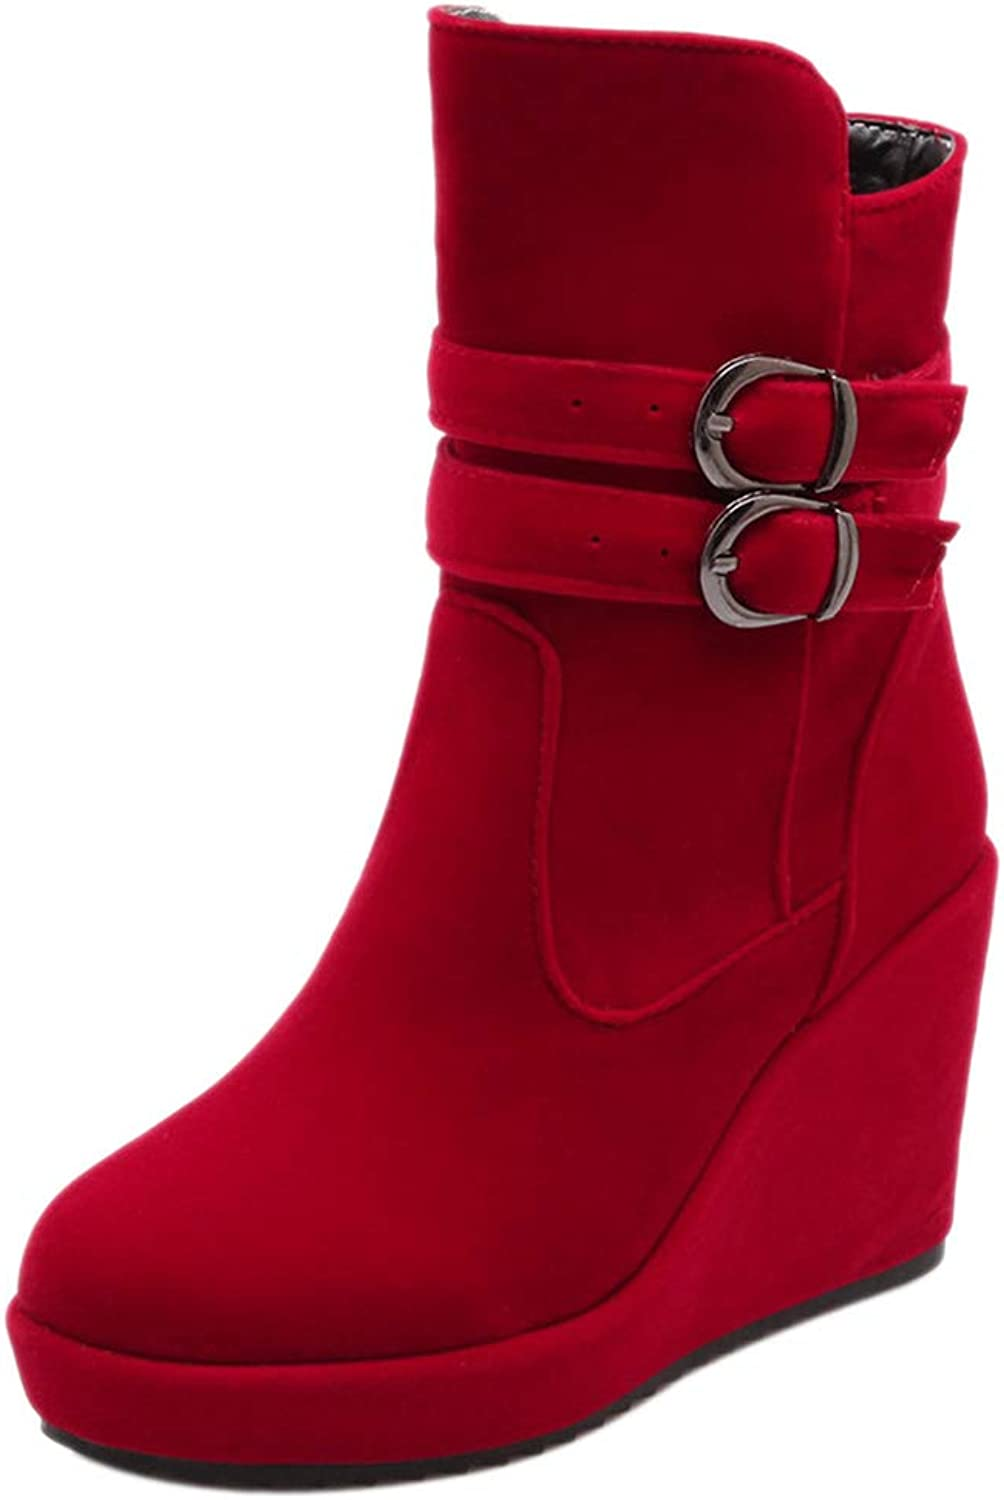 RizaBina Women Round Toe Wedge Heels Ankle Boots Pull On